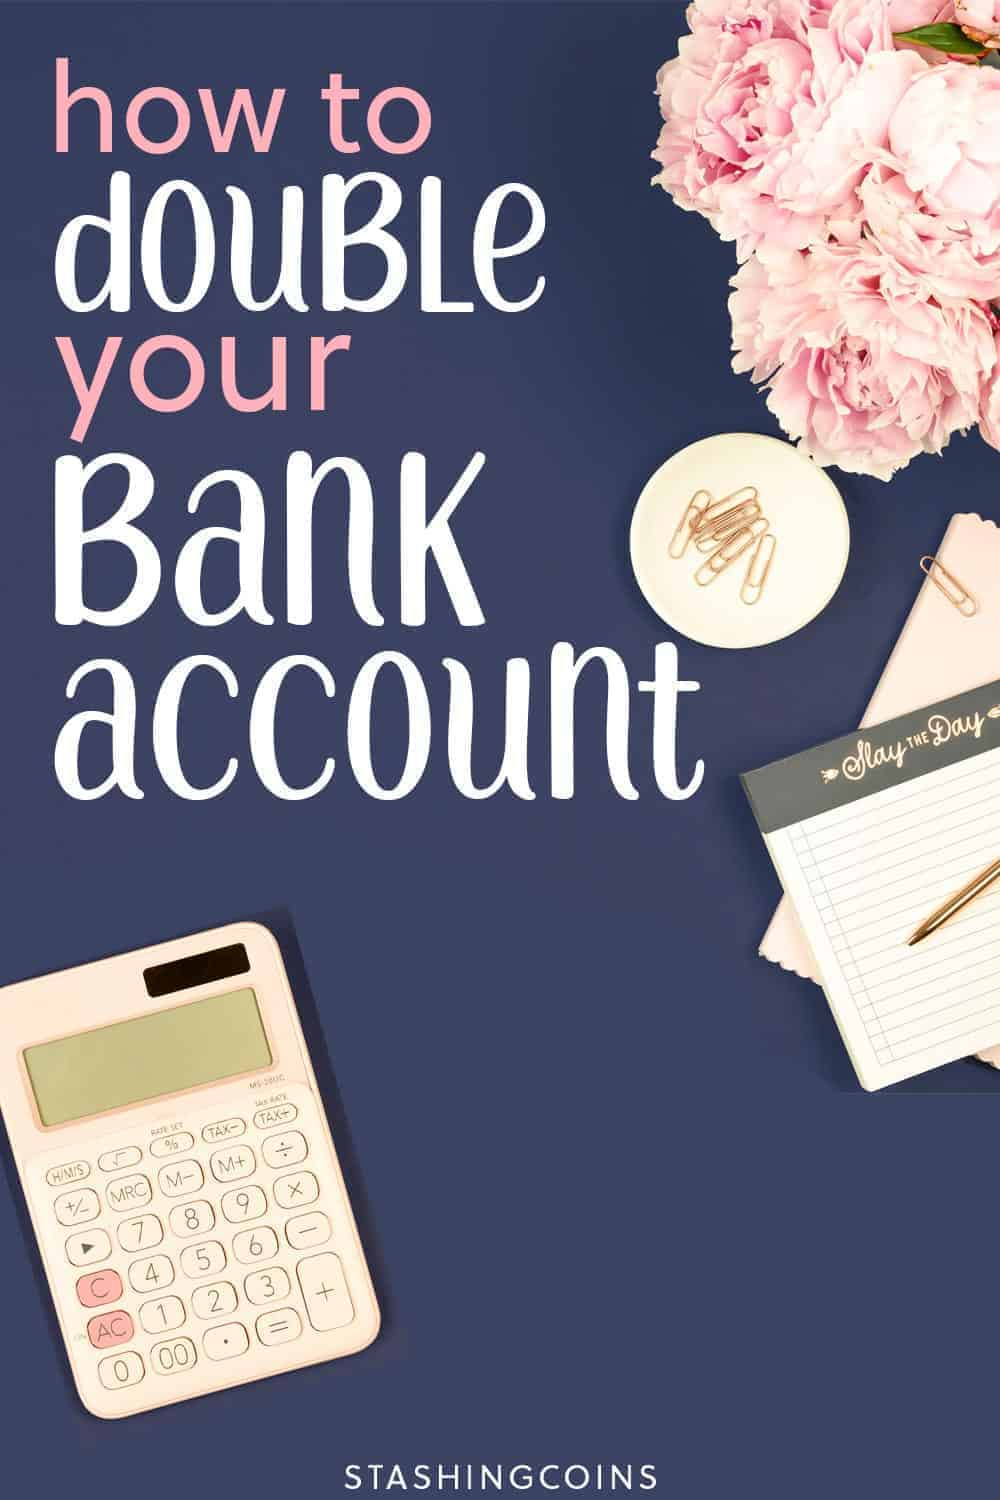 How-to-double-your-bank-account.jpg